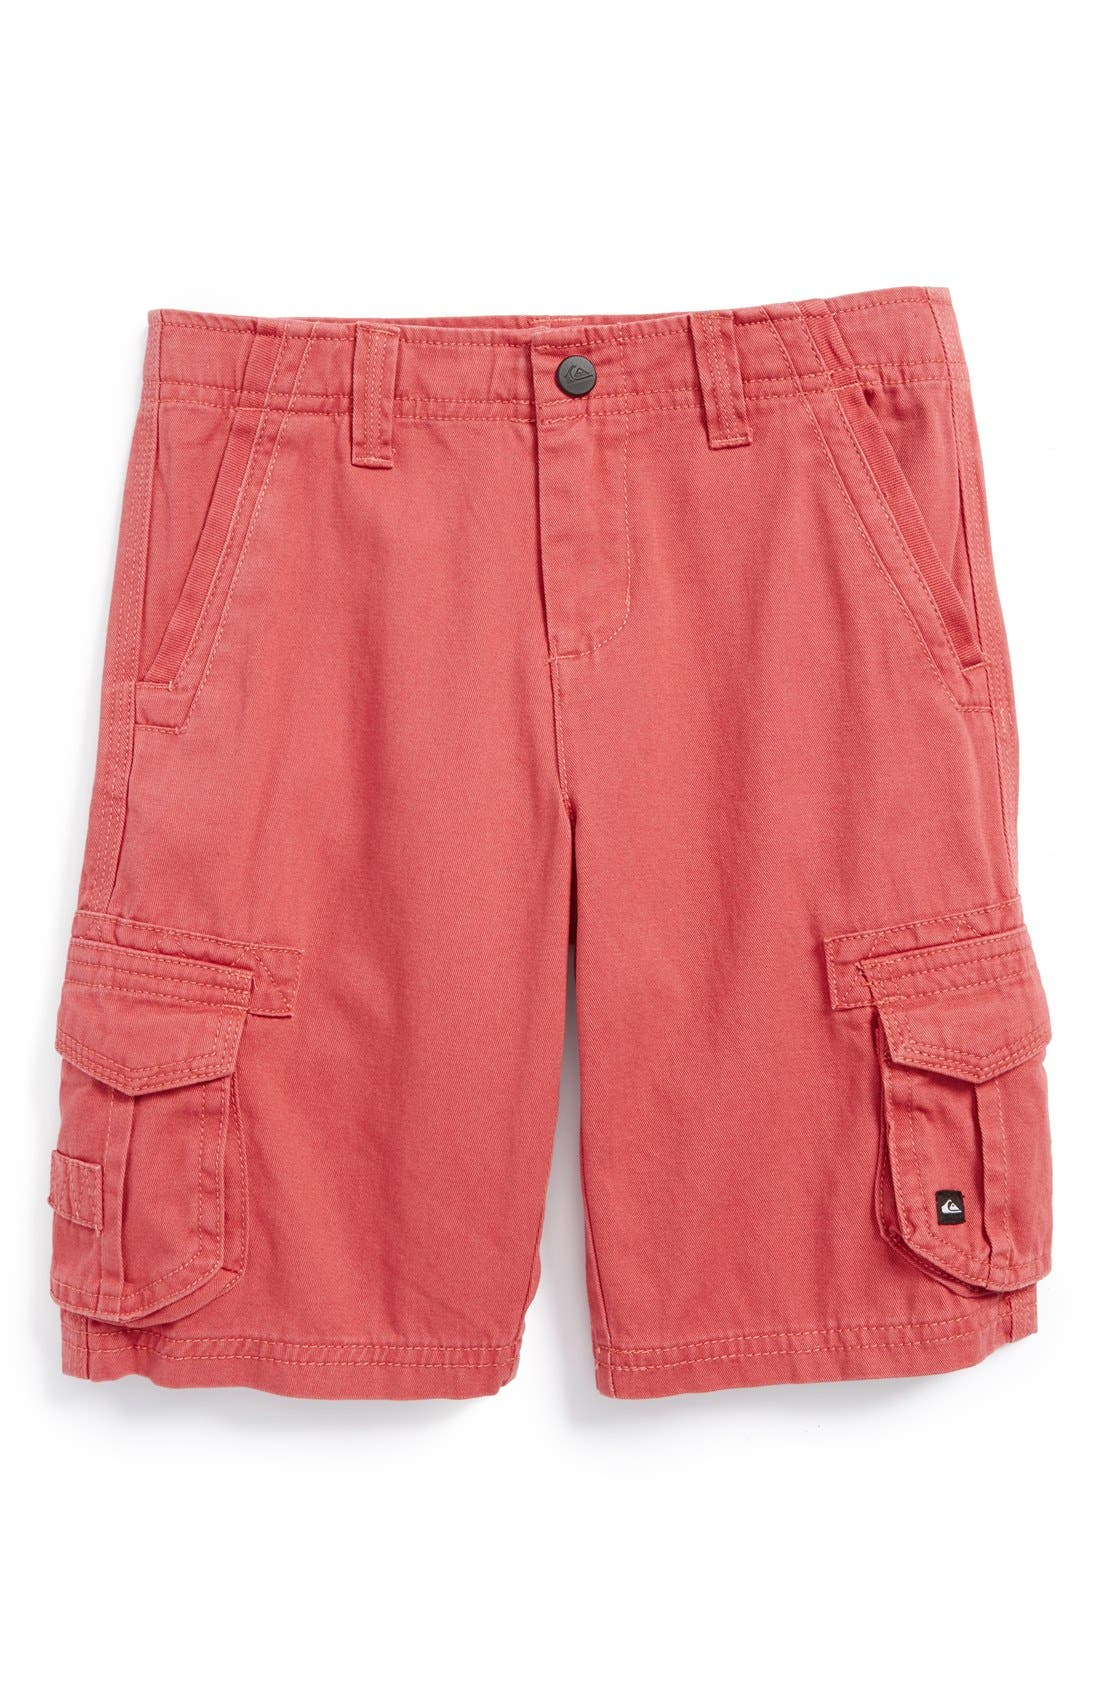 Main Image - Quiksilver 'Deluxe' Cotton Twill Cargo Shorts (Little Boys)